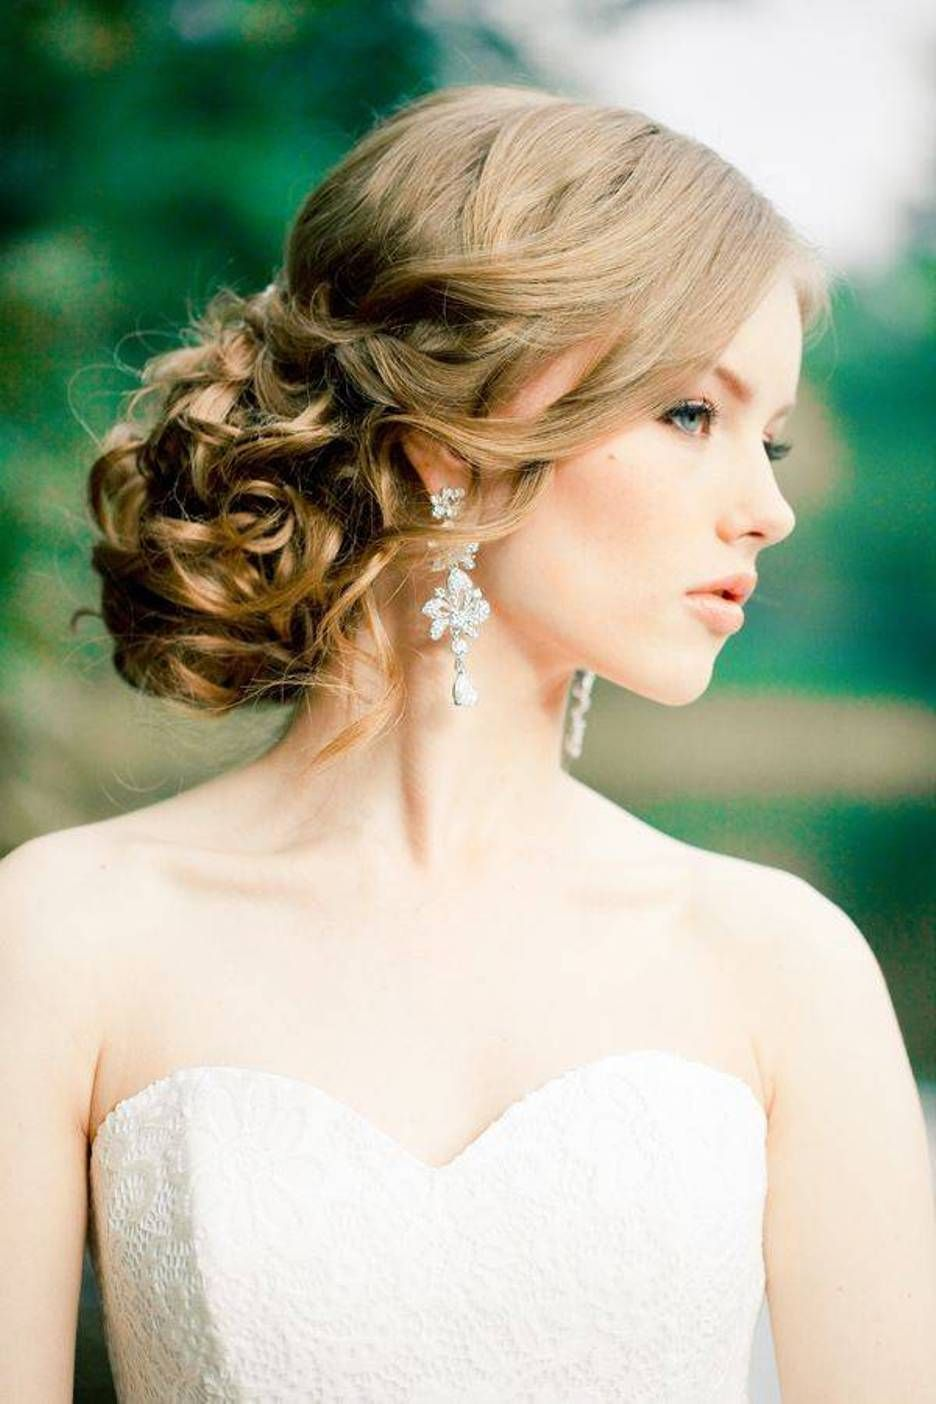 Hairstyles For Strapless Dresses : hairstyles, strapless, dresses, Renee, Bridal, Unique, Wedding, Hairstyles,, Bride, Romantic, Hairstyles